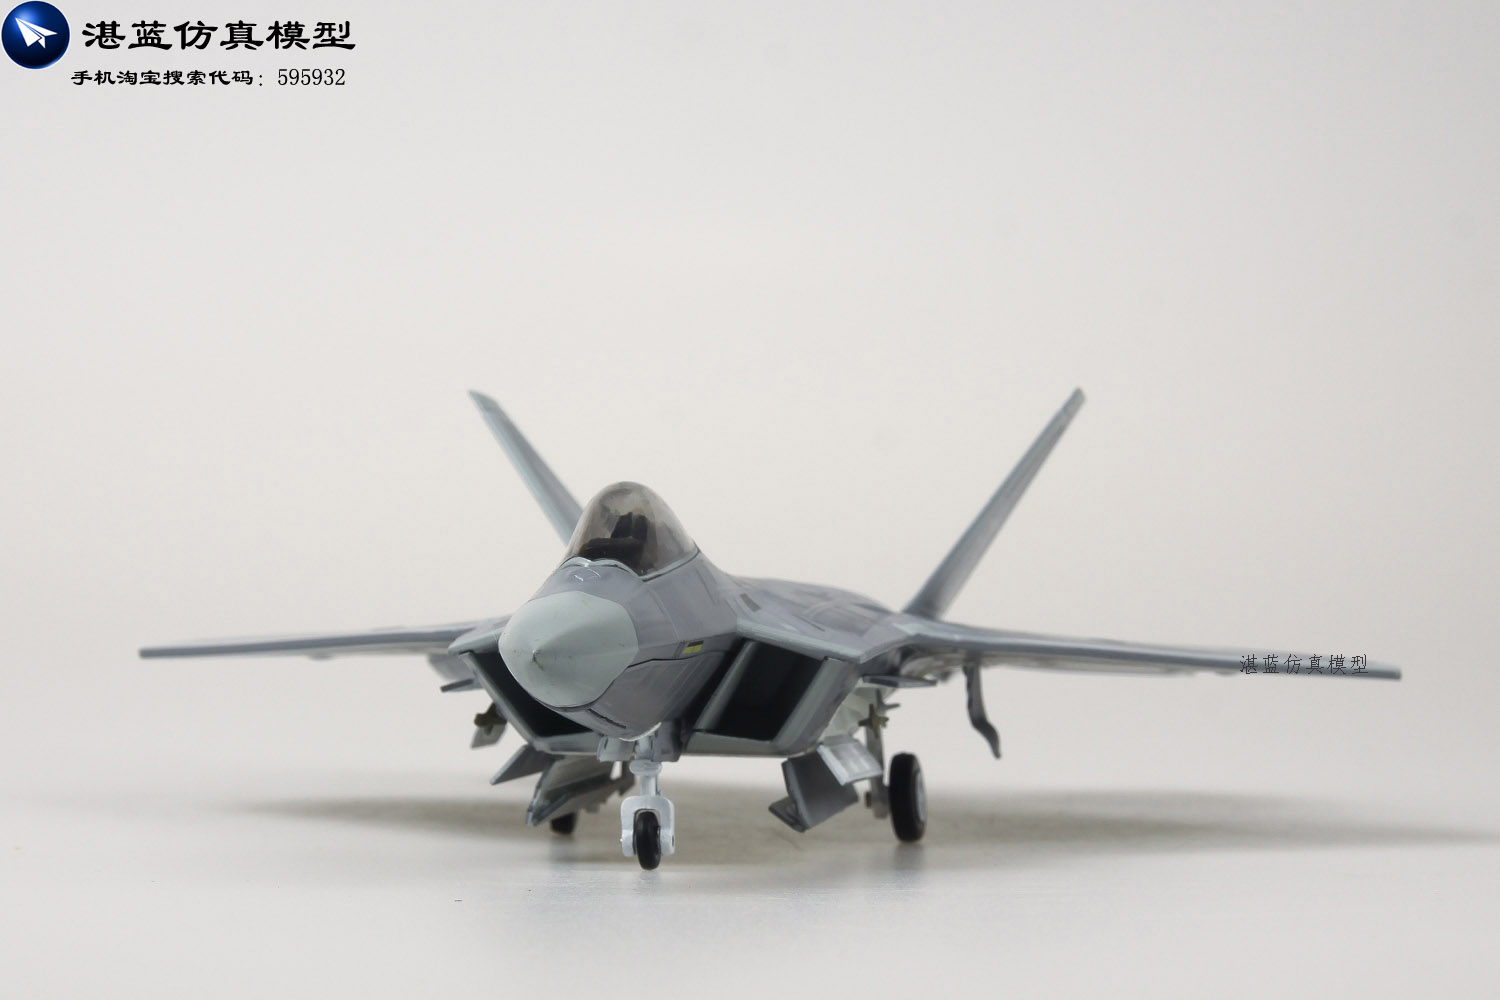 Brand New 1/72 Scale Airplane Model Toys USAF F-22 Raptor Fighter Diecast Metal Plane Model Toy For Gift/Collection/Decoration pre sale phoenix 11216 air france f gsqi jonone 1 400 b777 300er commercial jetliners plane model hobby